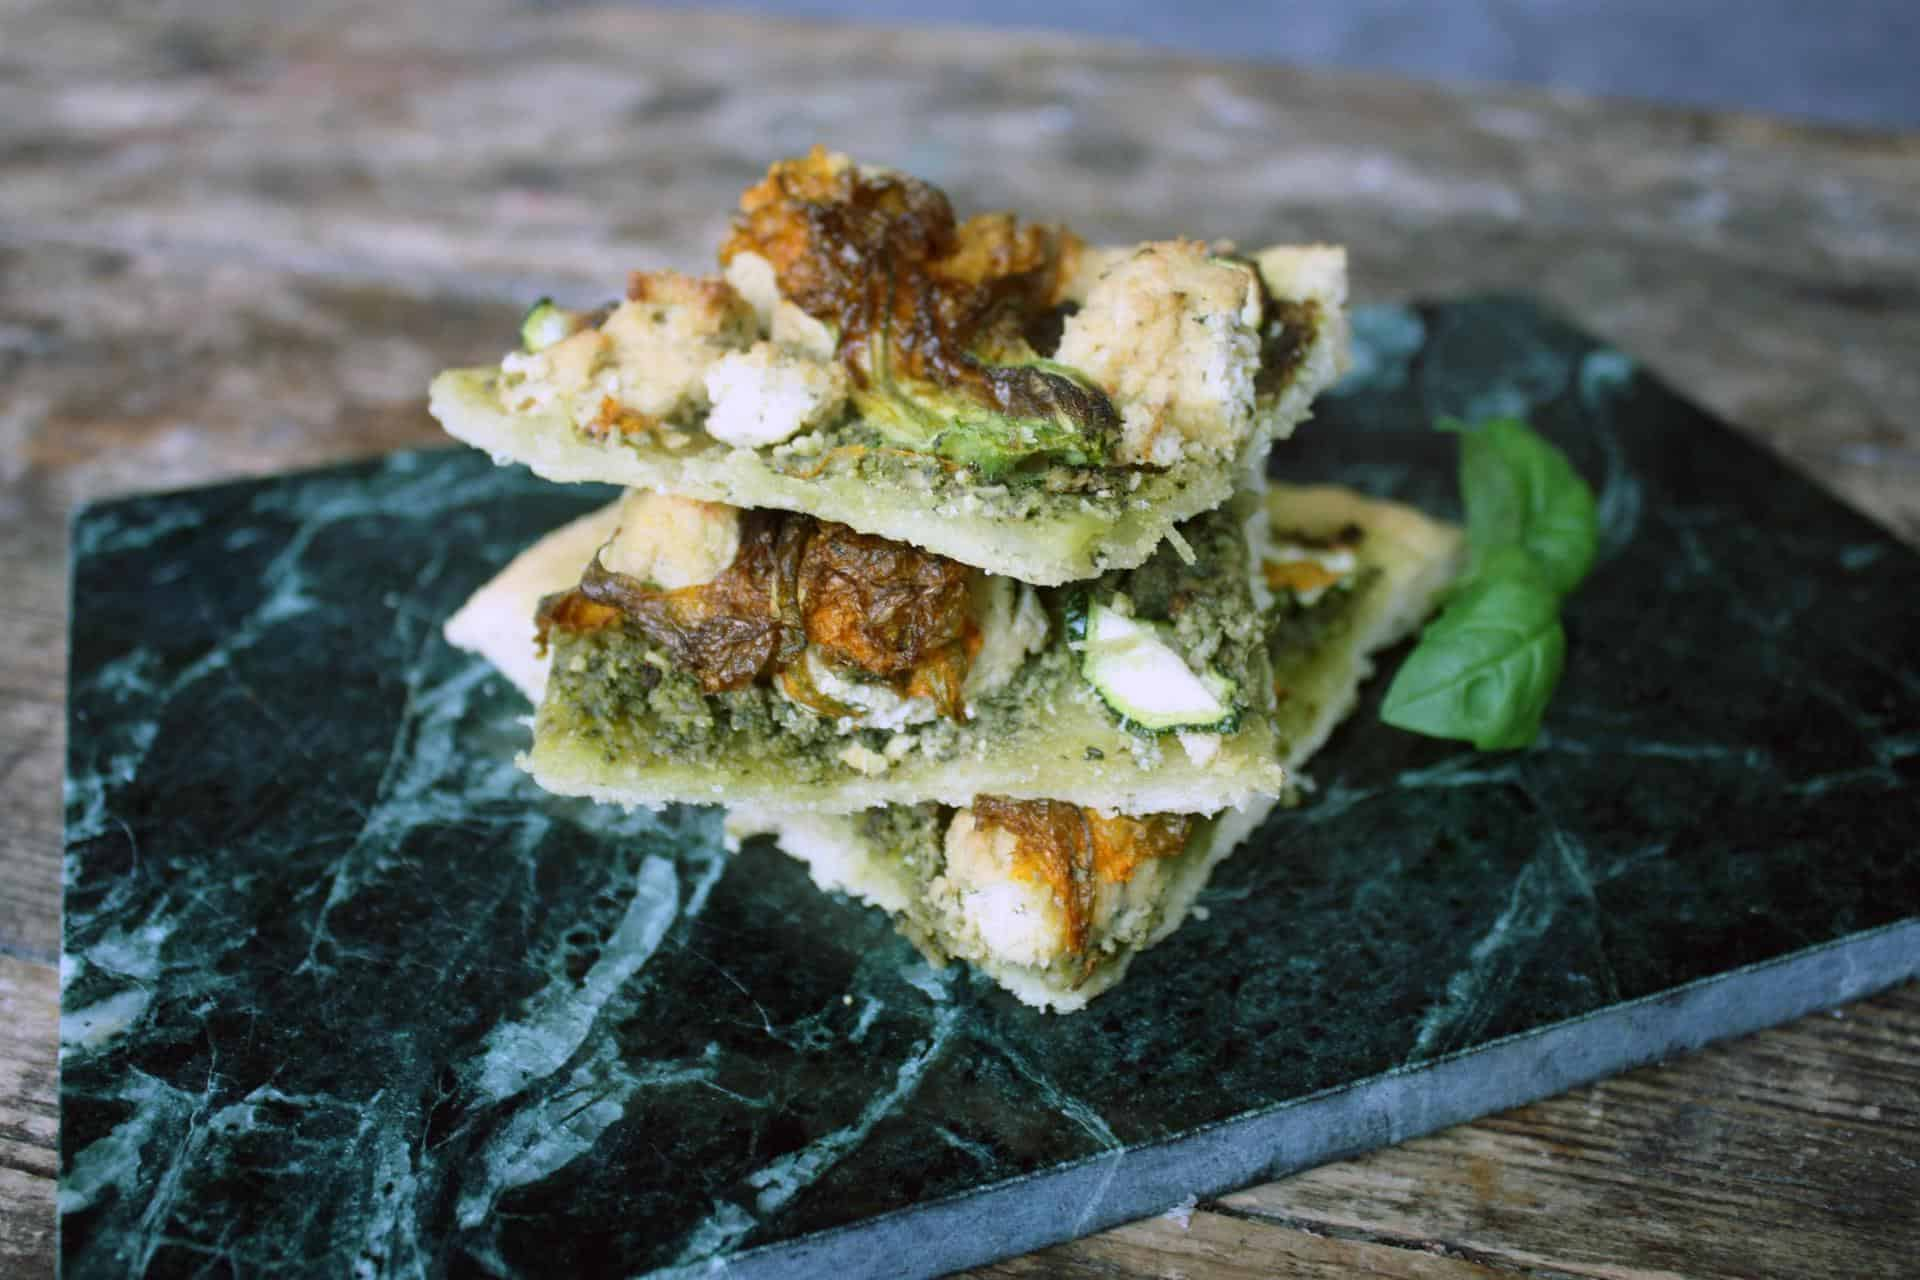 Pesto pizza with zucchini blossoms and cashew ricotta (vegan)